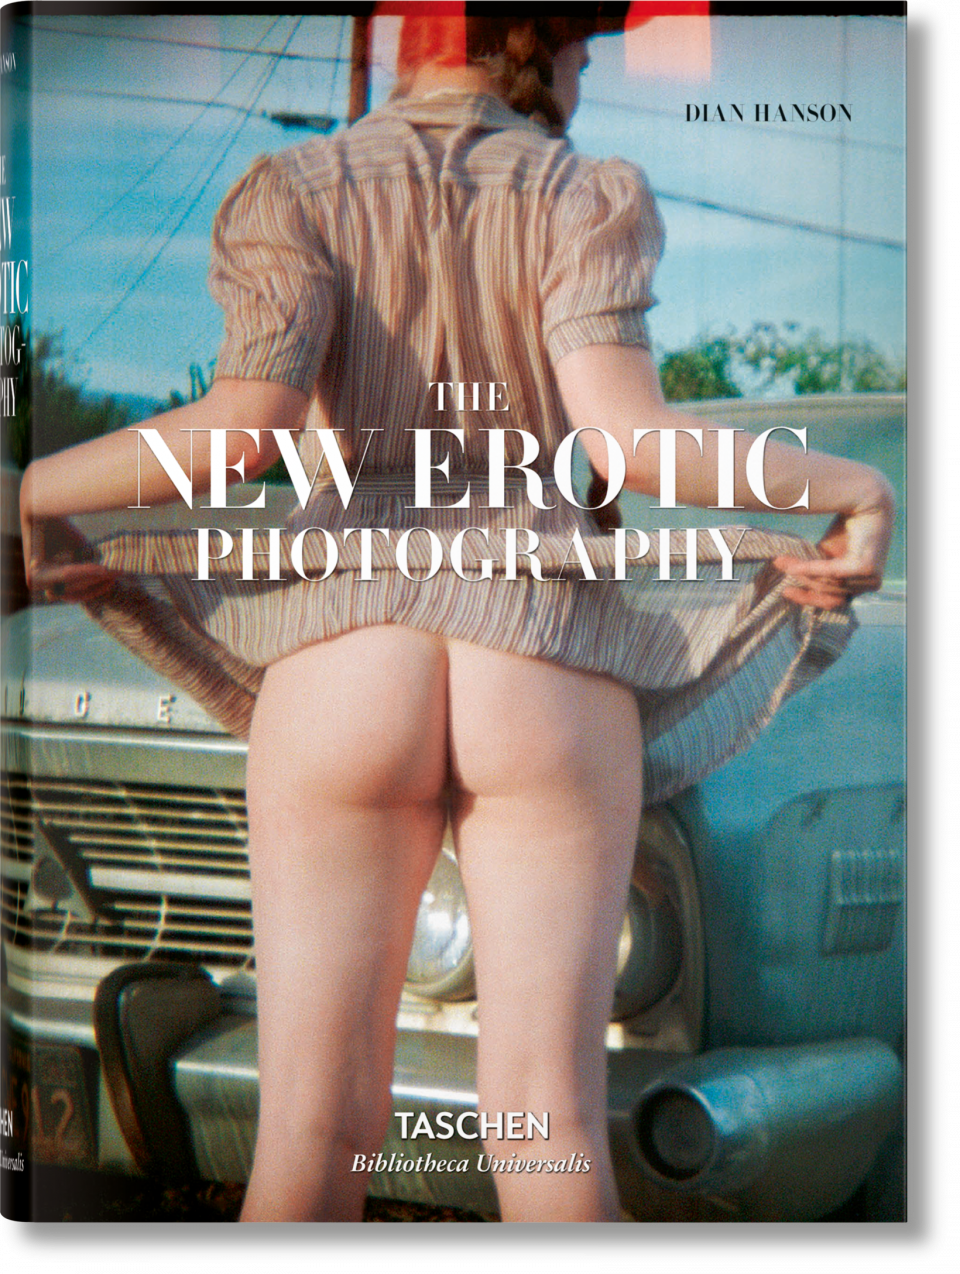 The New Erotic Photography - Hanson Dian